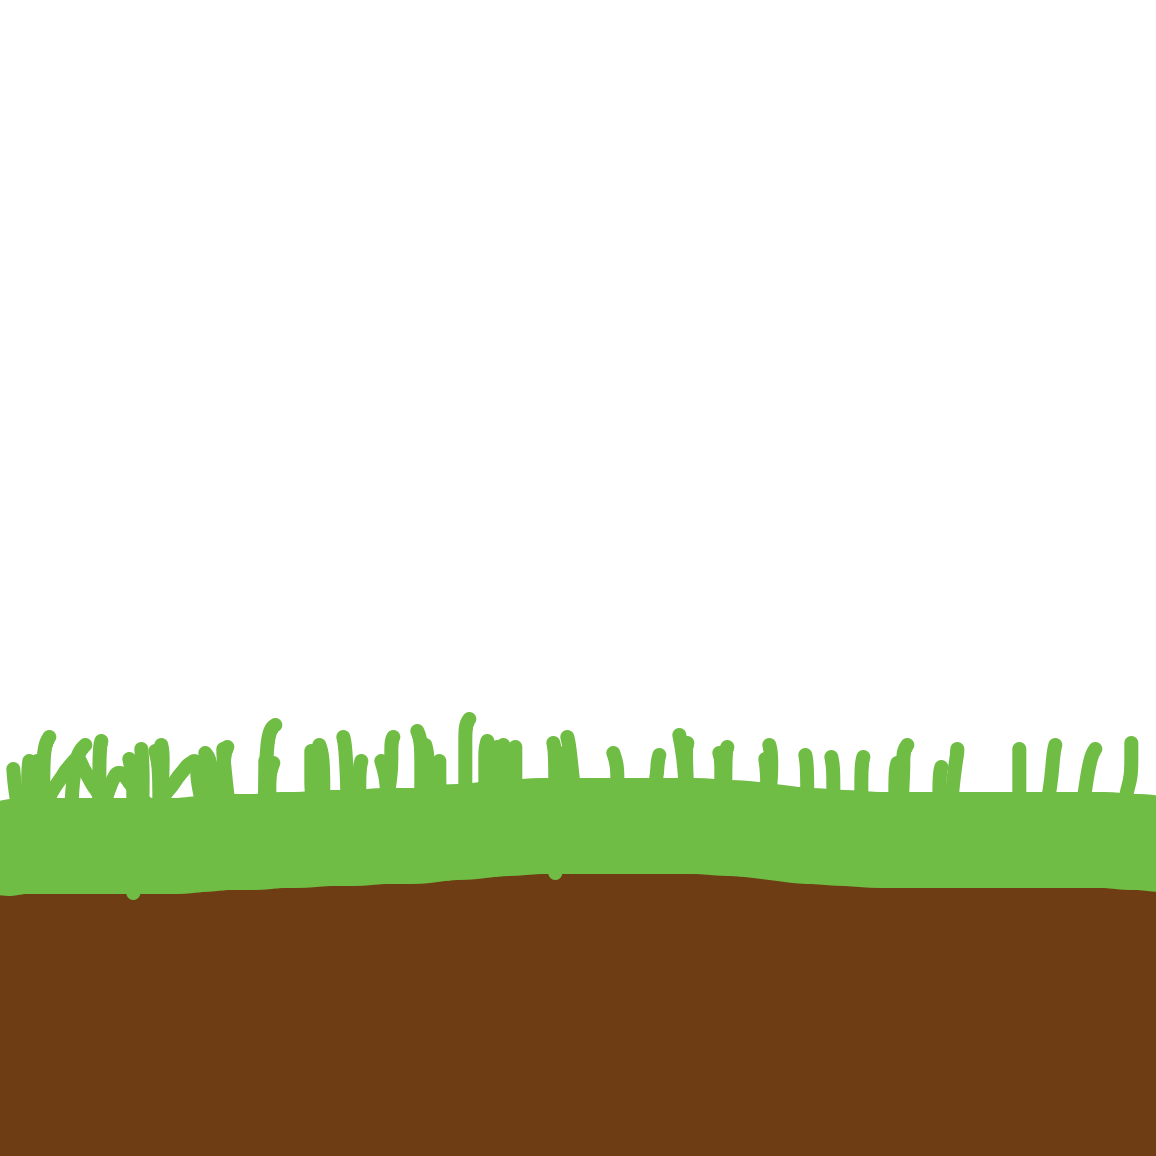 Grass - Online Drawing Game Comic Strip Panel by Nonexistent